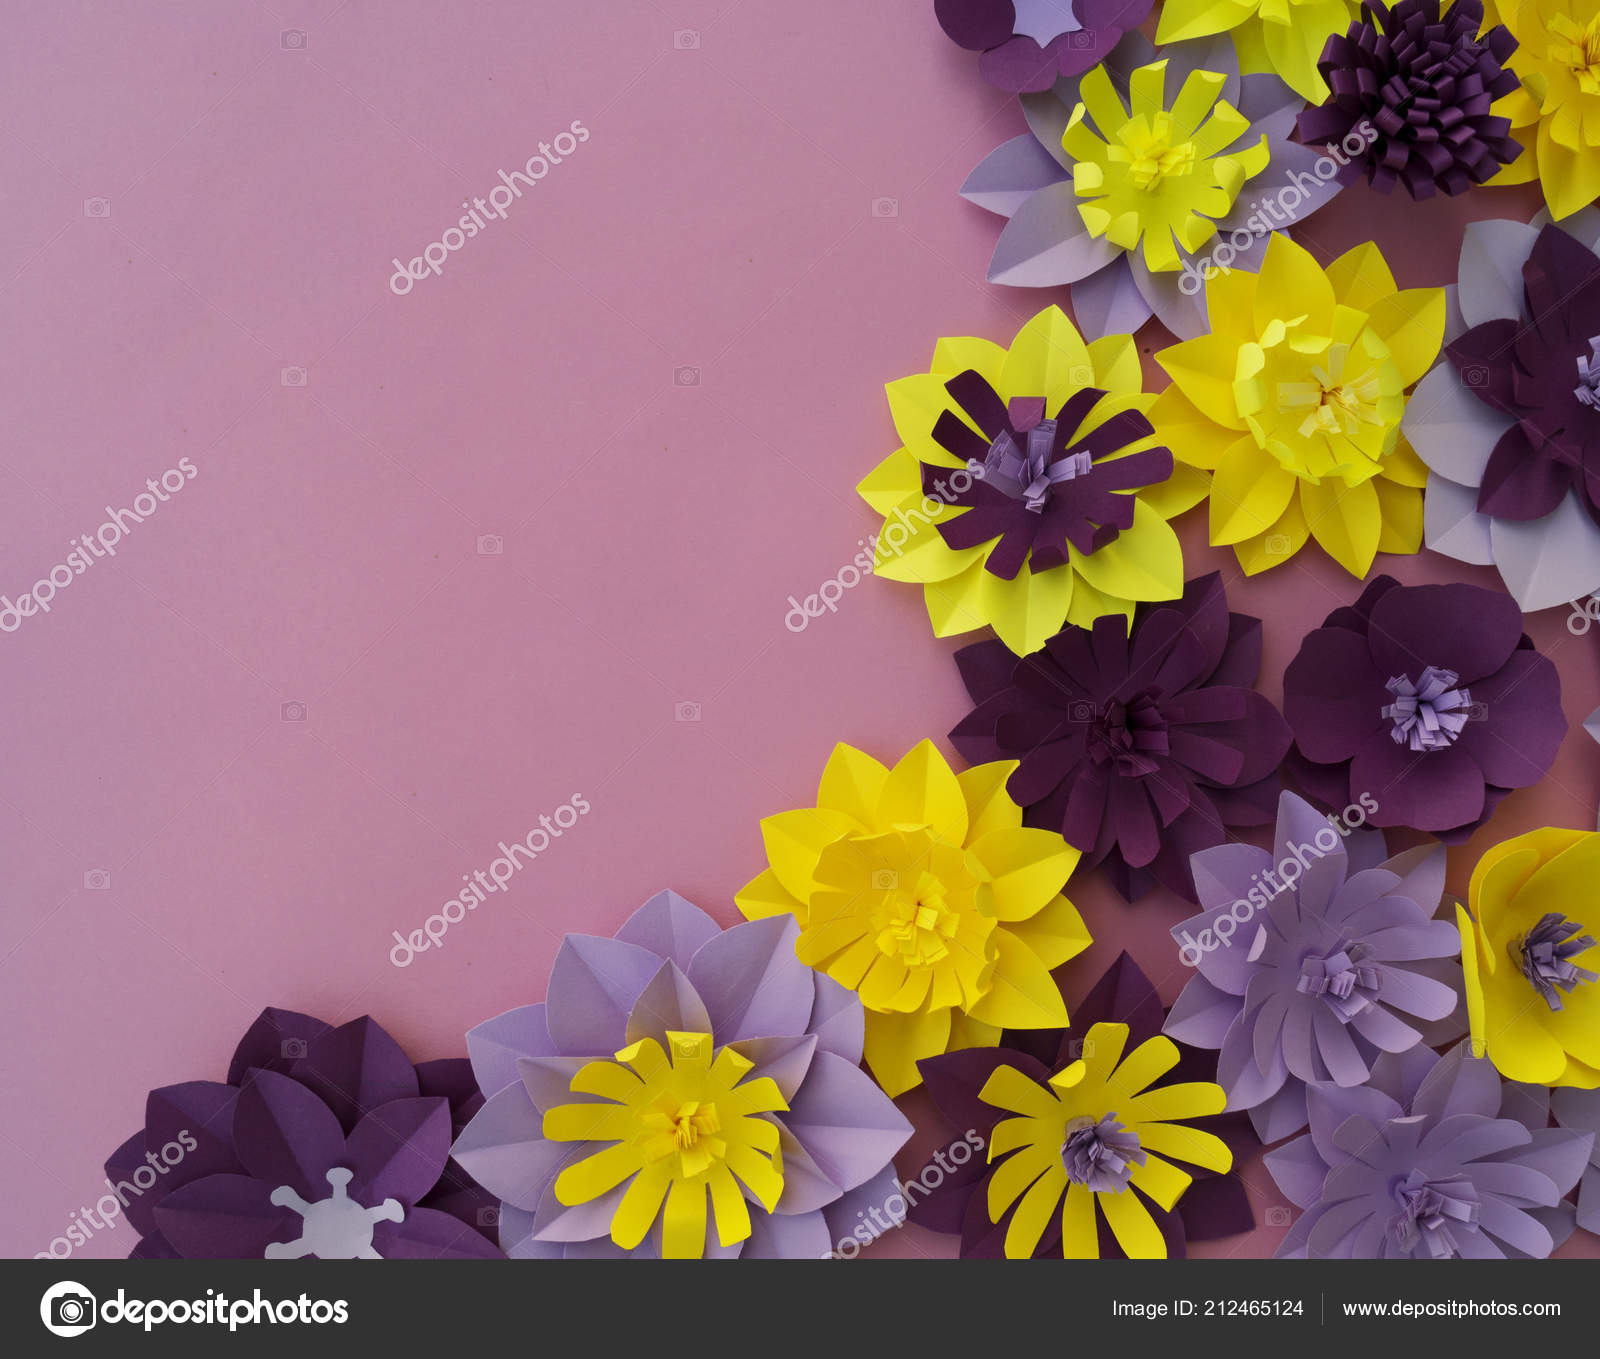 Paper Craft Flower Decoration Concept Flowers Leaves Made Paper